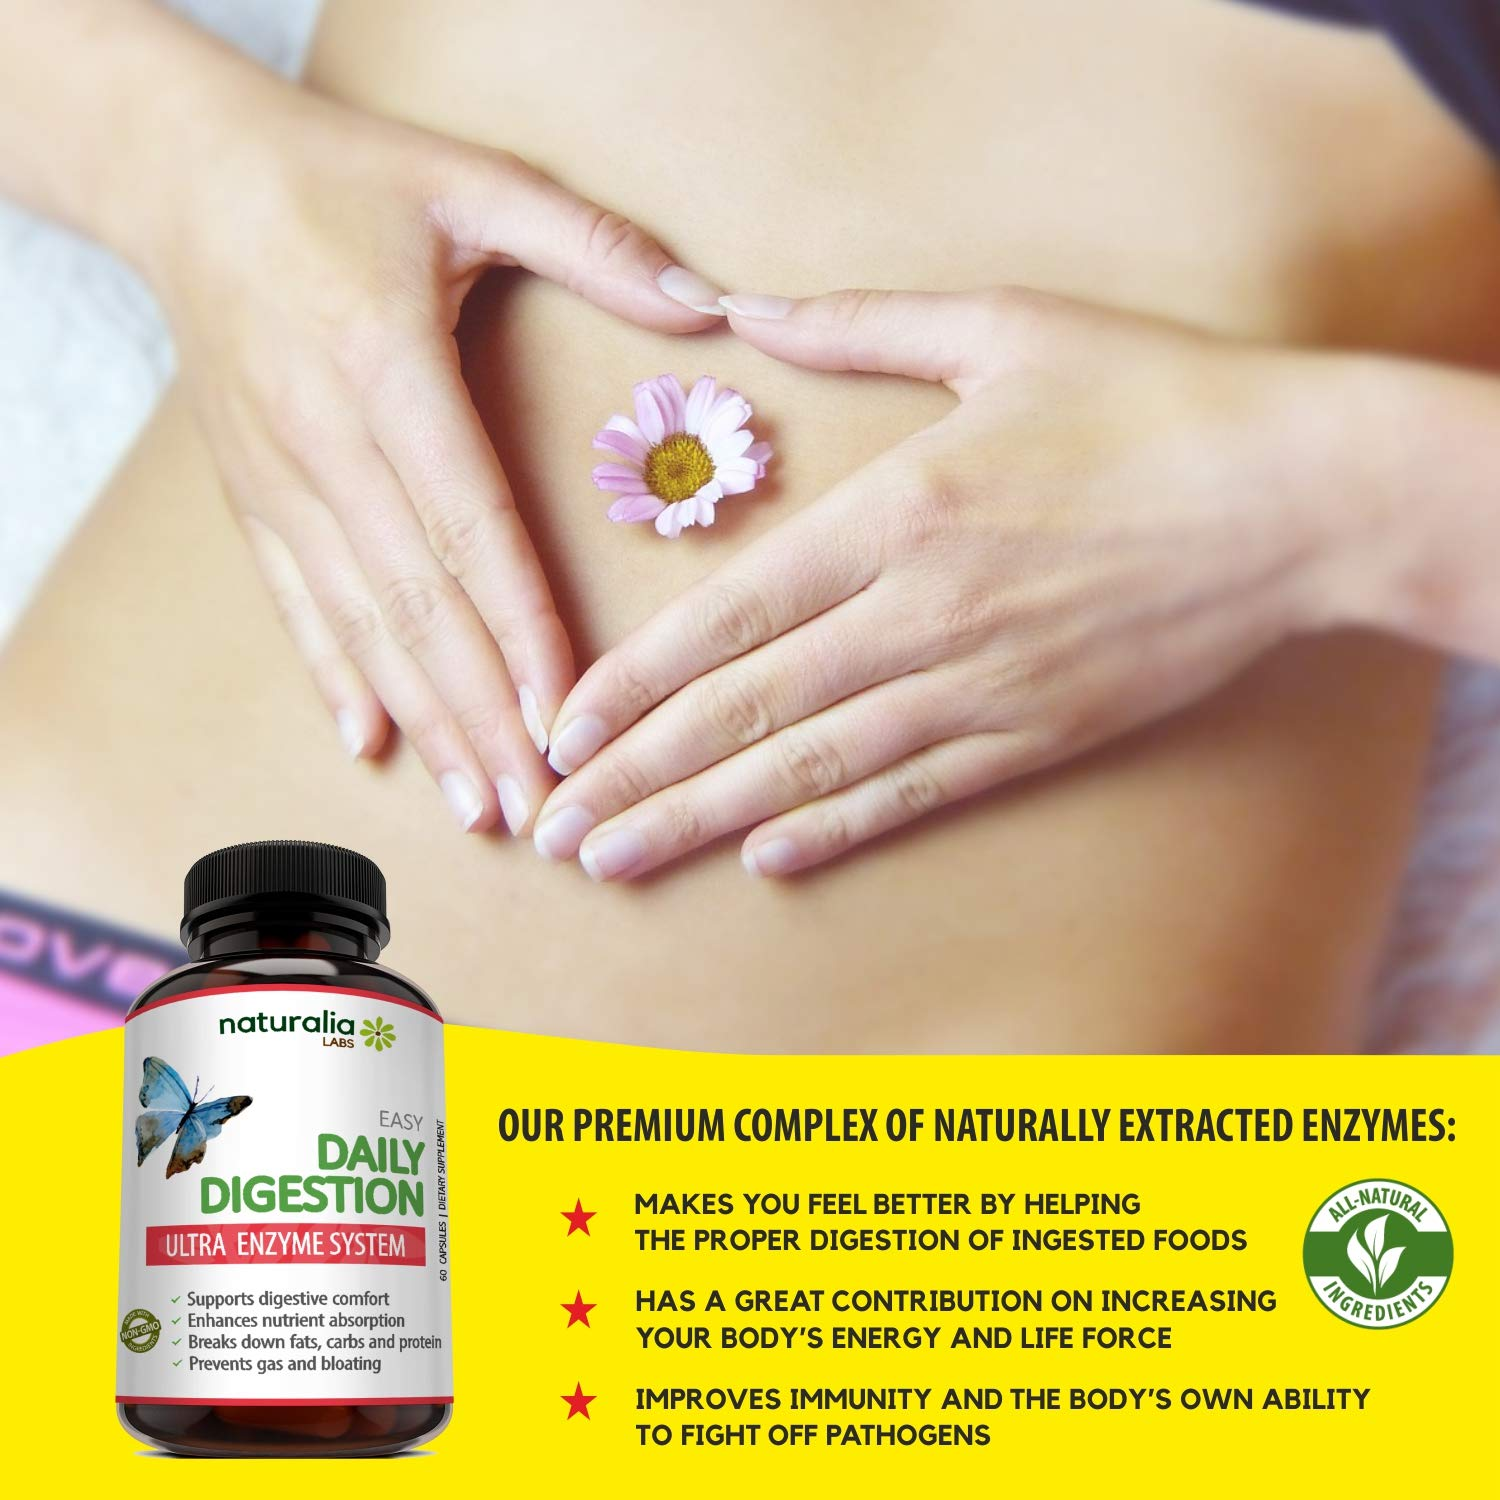 Naturalia Labs - Digestive Enzyme Supplements - Bromelain, Lactase, Lipase, Amylase, Papain,...